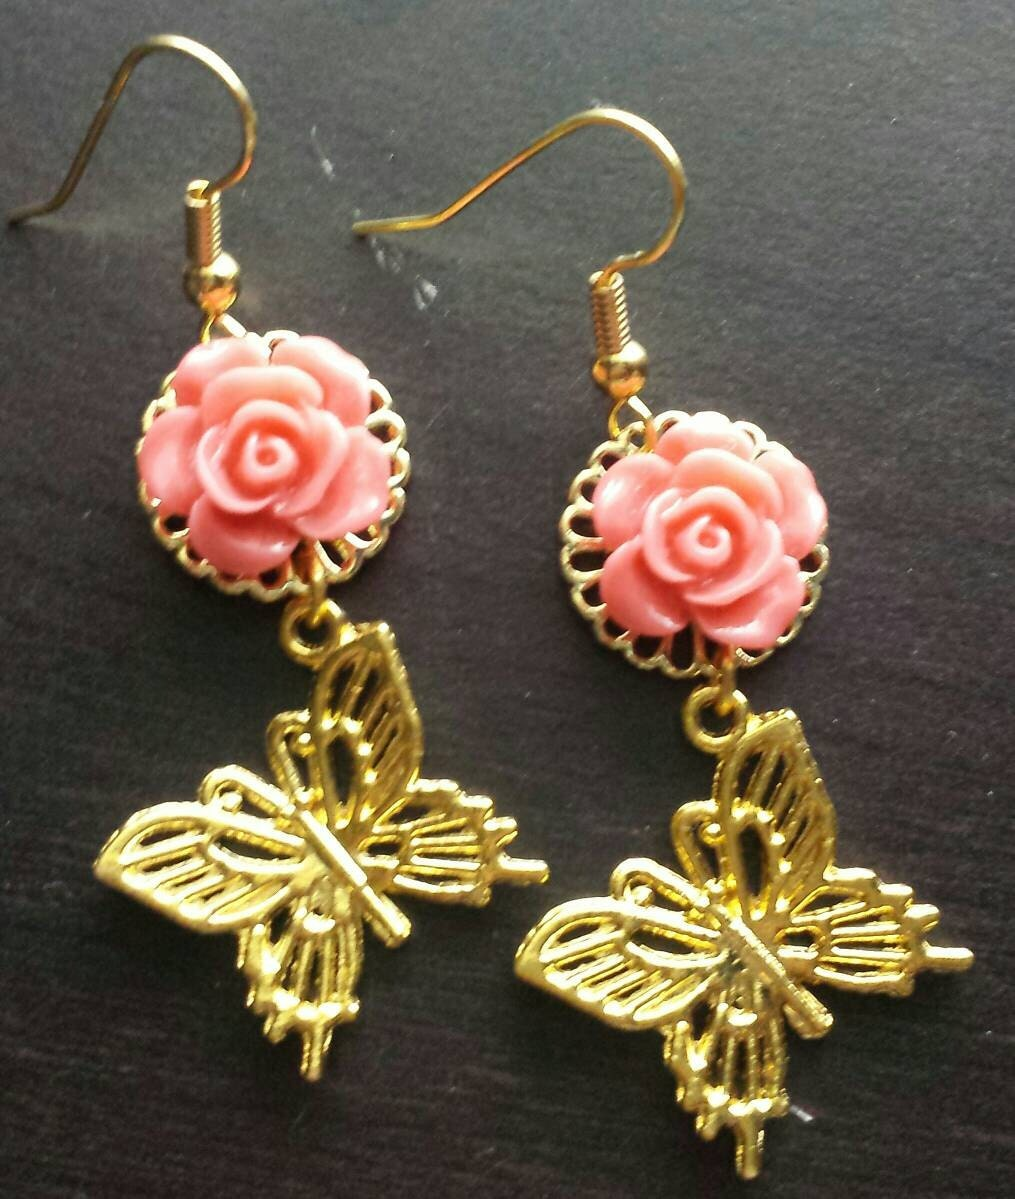 Gold Dangle Butterfly Earrings Pink Rose and Butterfly Dangle Earrings Gold Earrings for Girls Gifts for Her Rose Earrings (SALE)